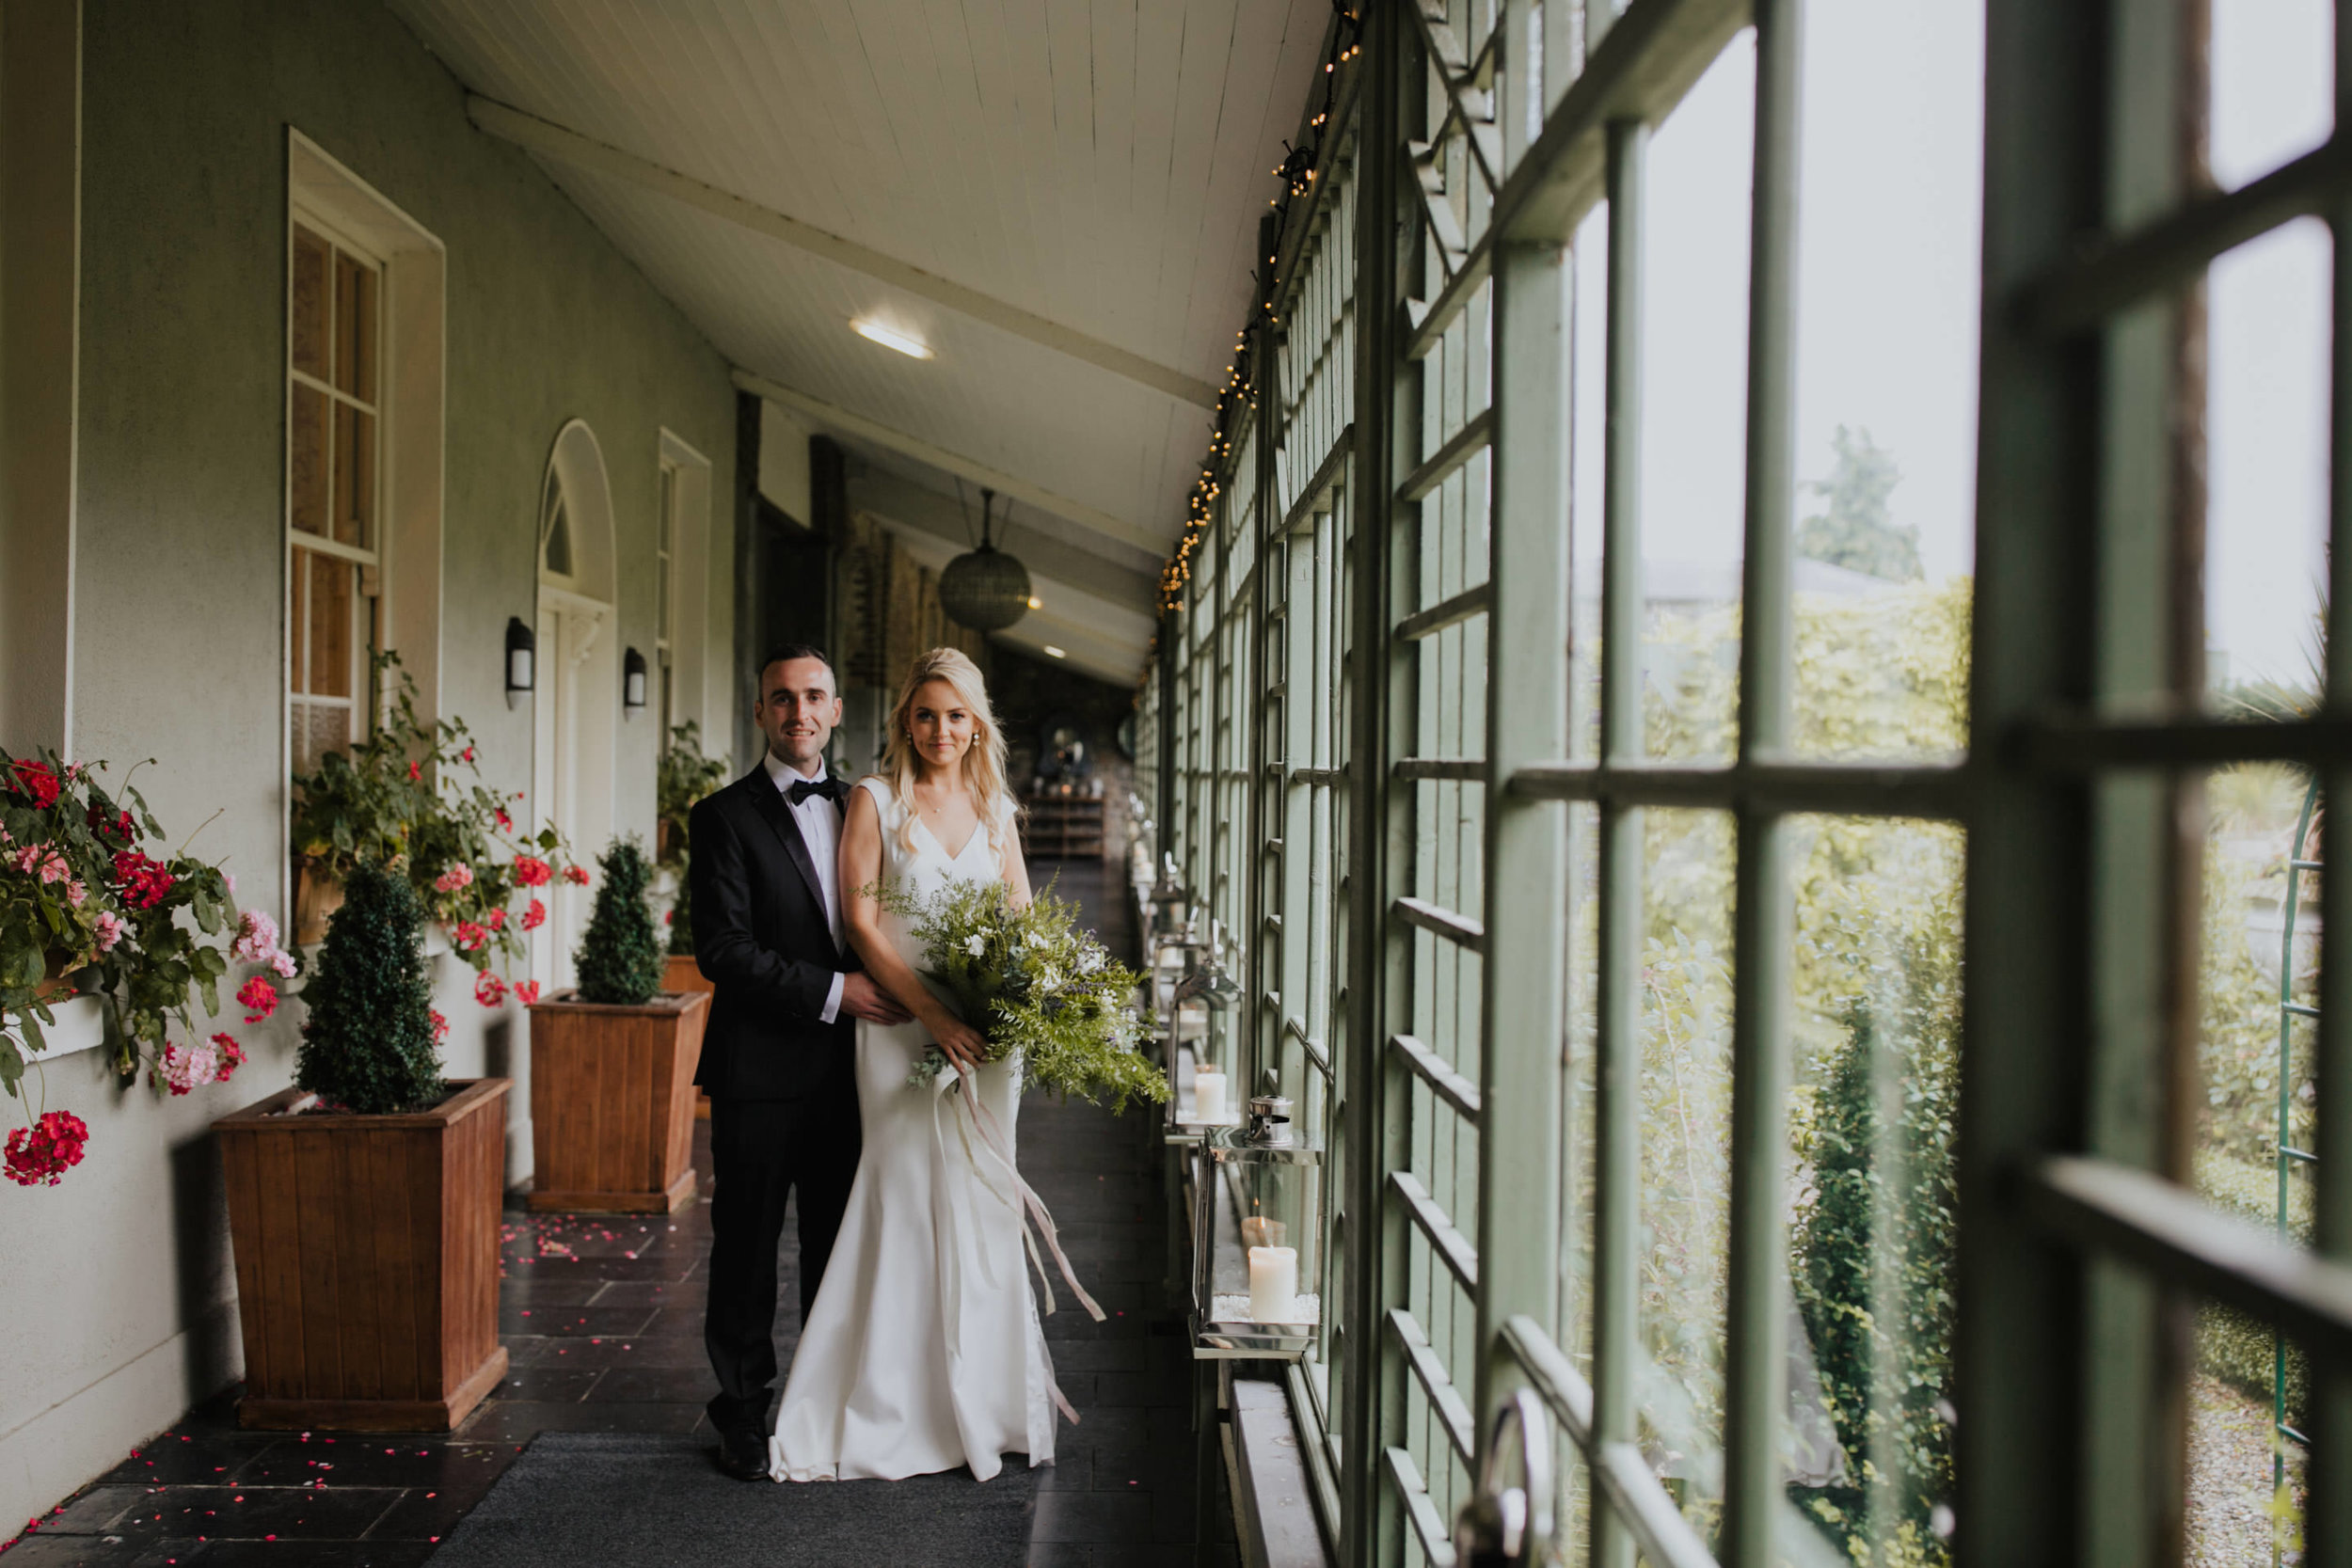 a+n_castle_durrow_wedding_photographer_livia_figueiredo_39.jpg